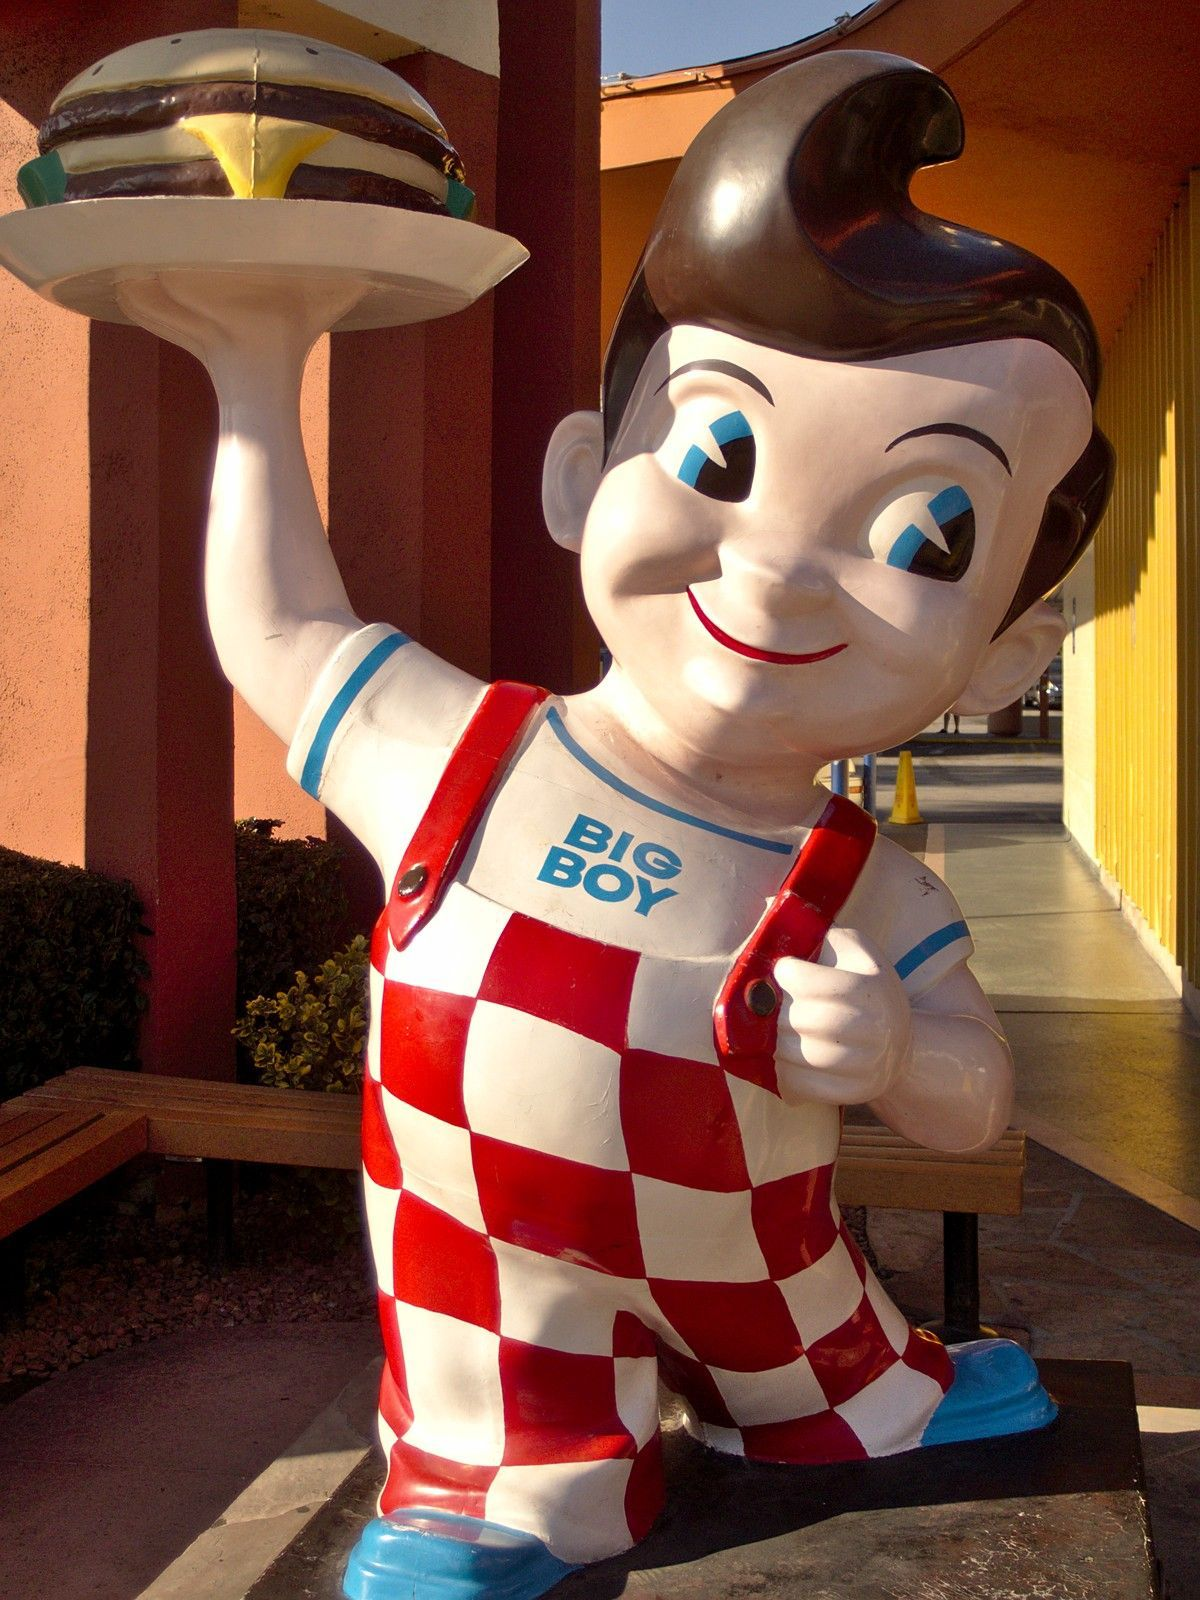 Pin By Adventures In Jeff S Land On Where The Weird Things Go Big Boy Restaurants My Childhood Memories Shoneys Big Boy